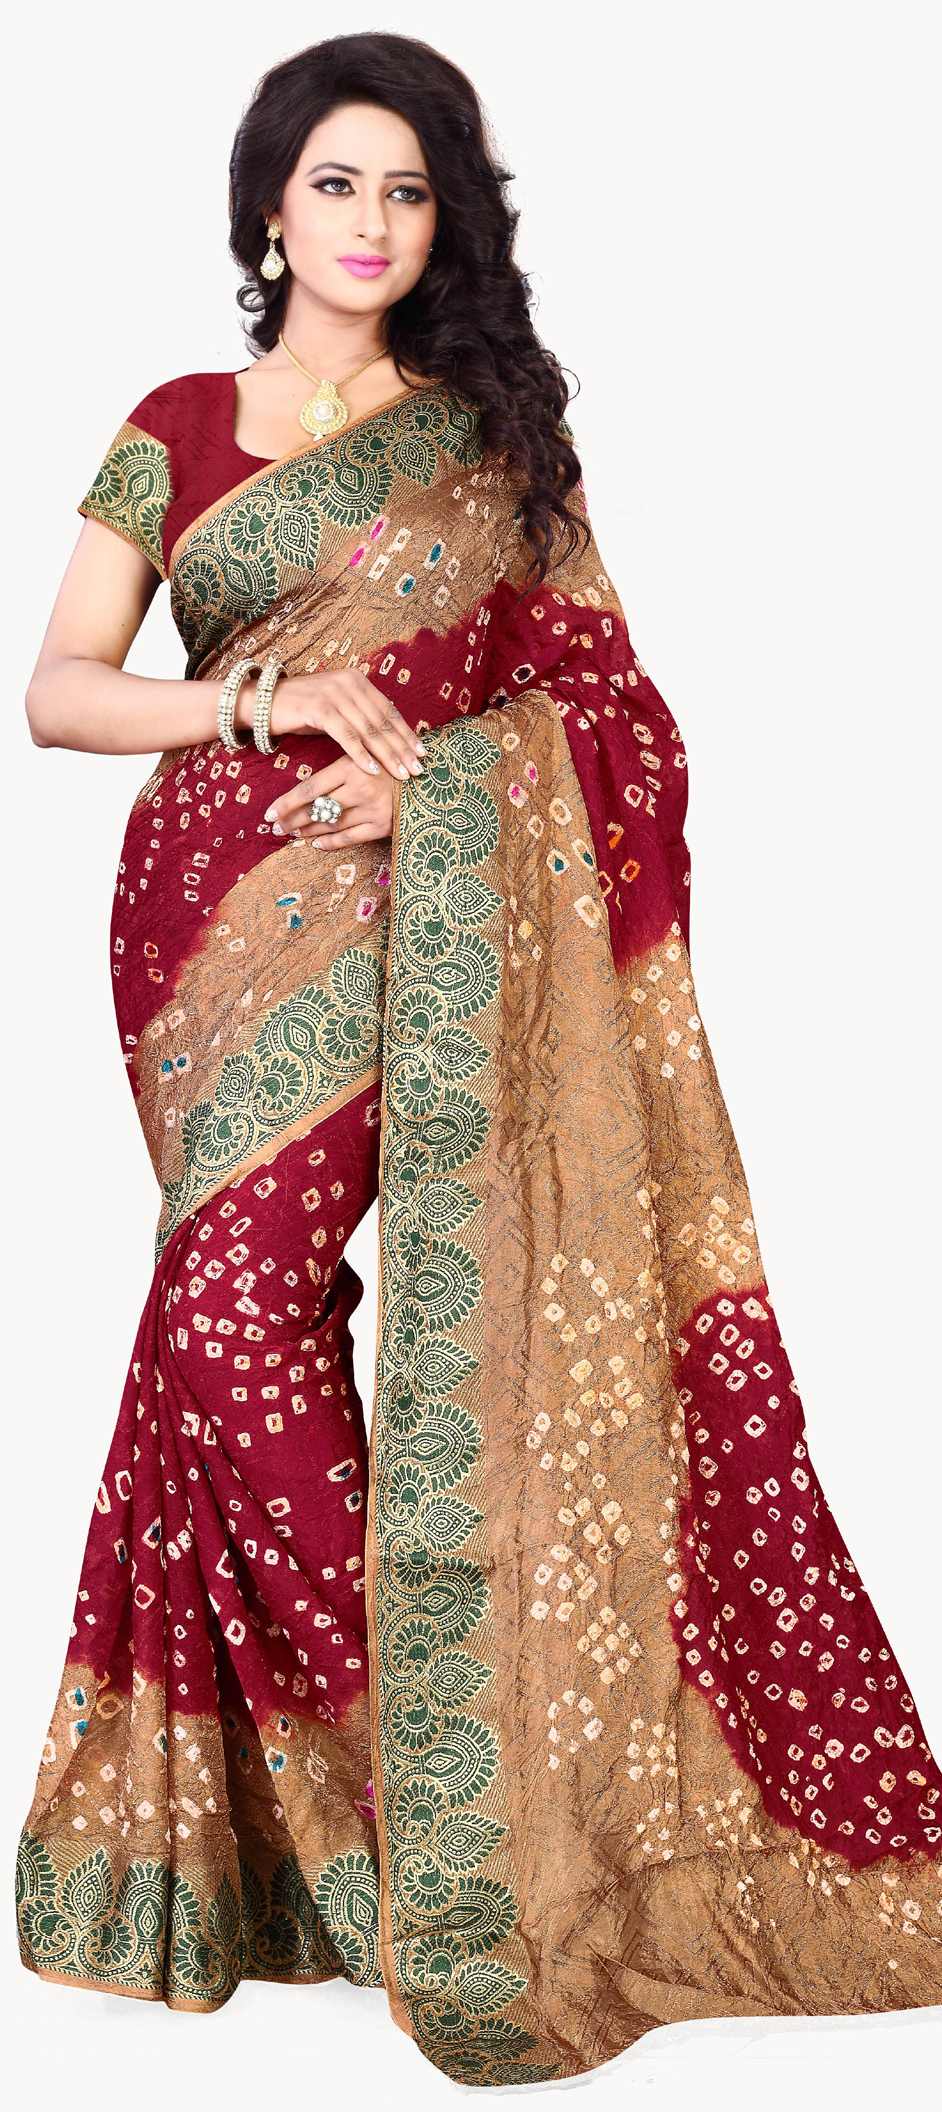 708701: Beige and Brown, Red and Maroon color family Bandhej Sarees ...